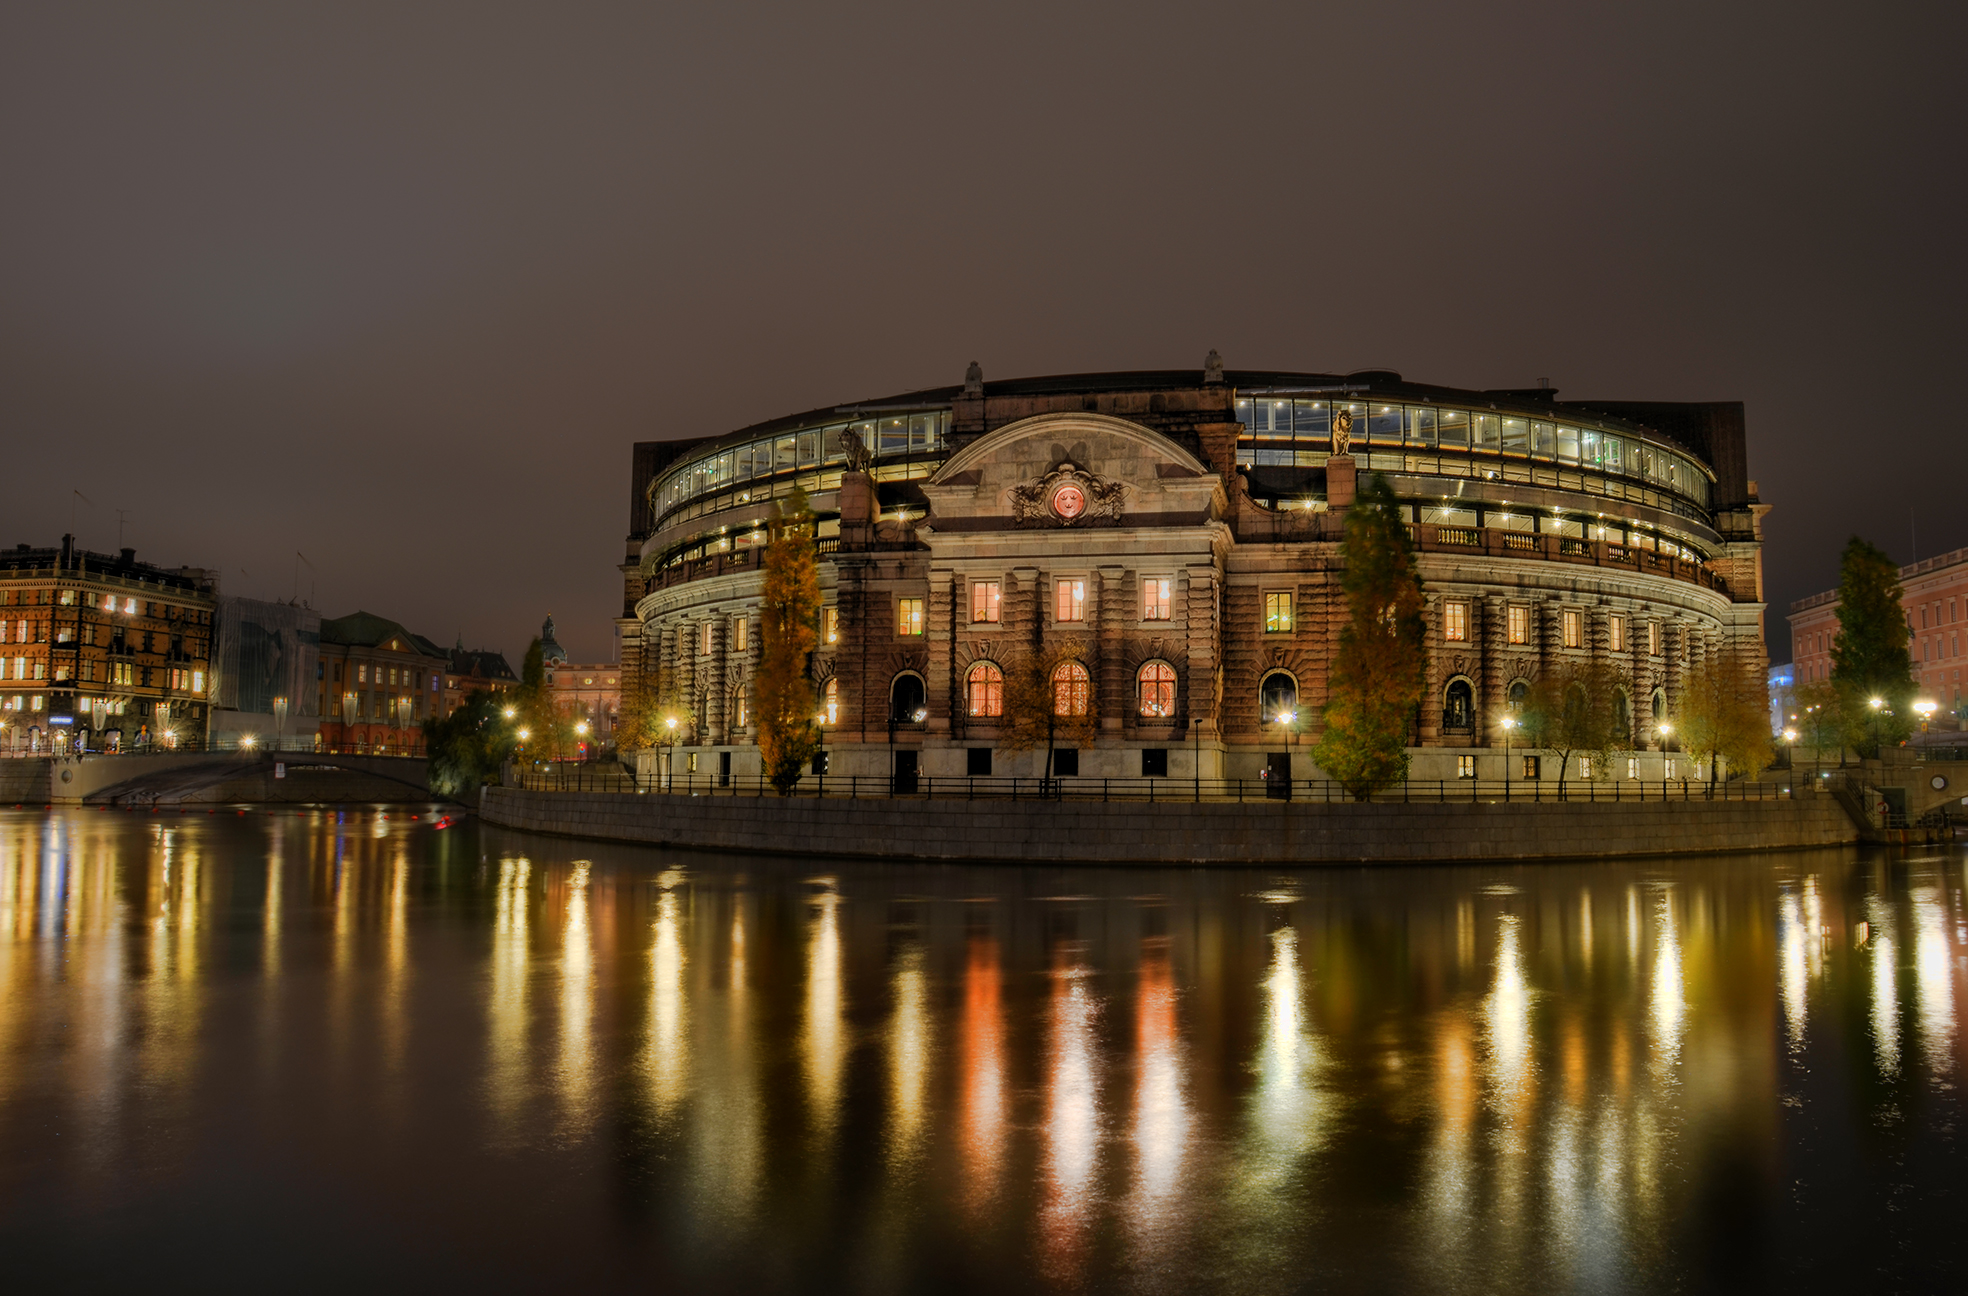 The Parliament II: Night by HenrikSundholm